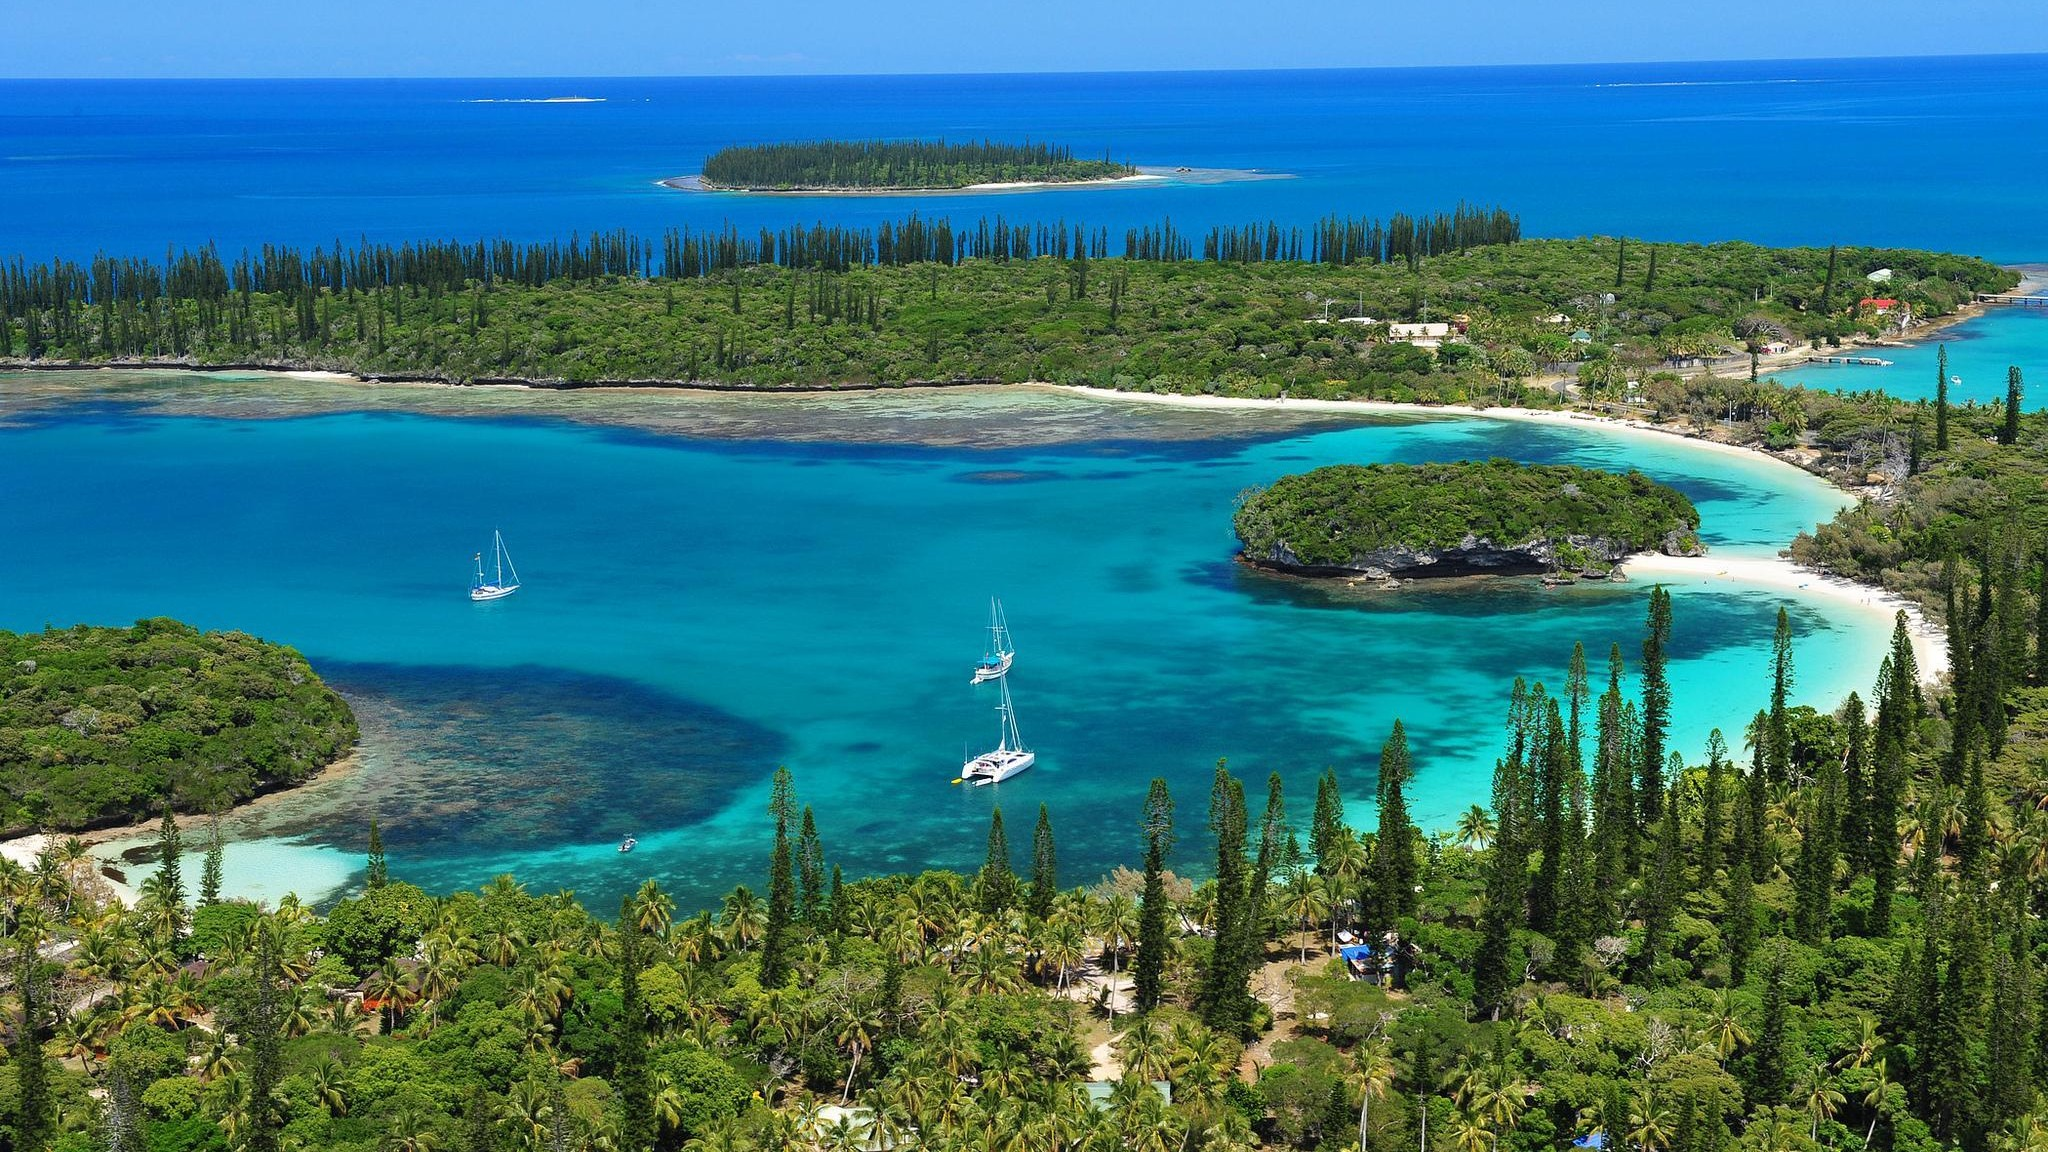 New Caledonia South Pacific wallpaper 2048x1152